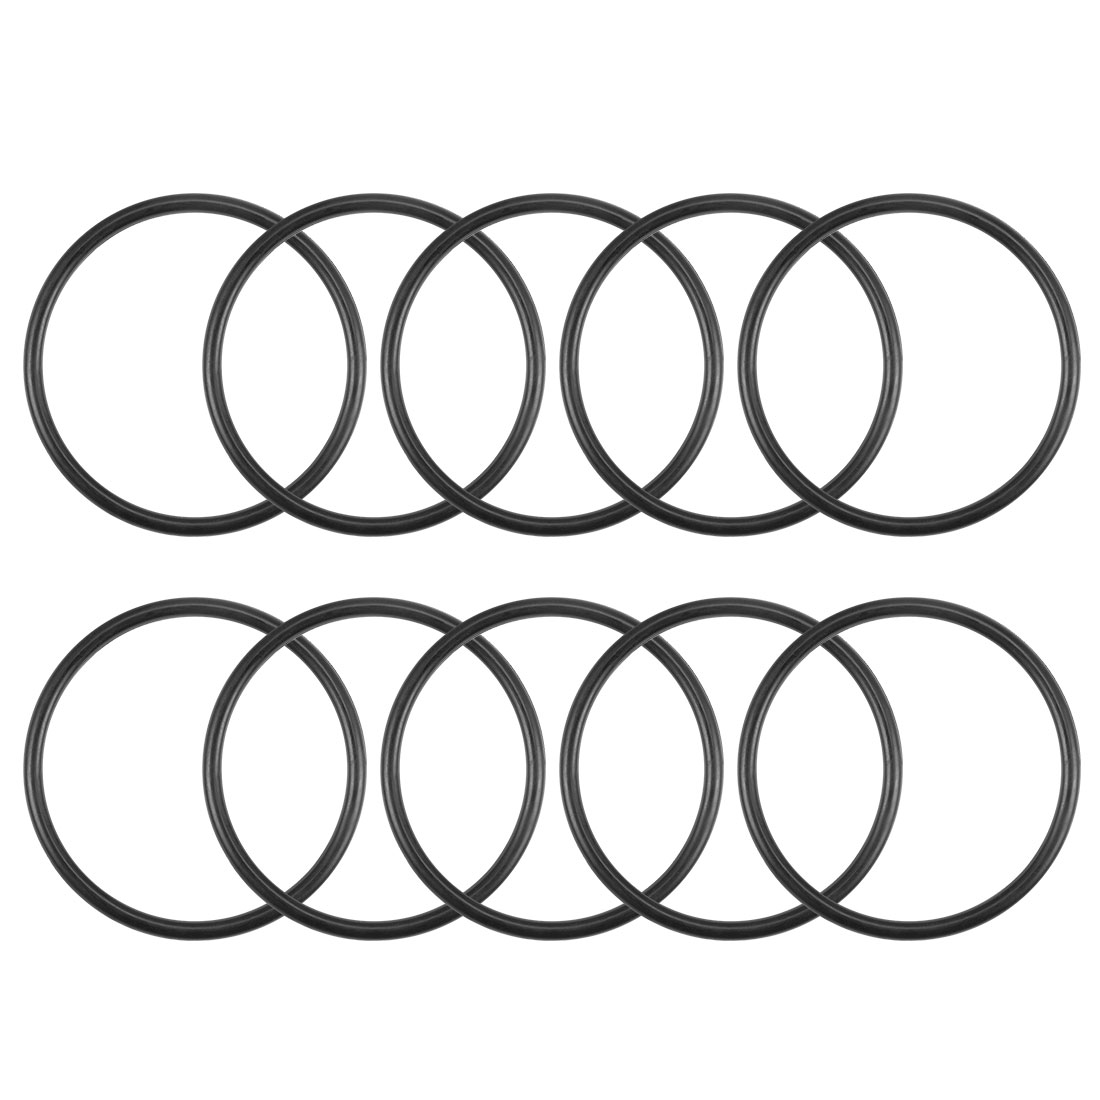 O-Rings Nitrile Rubber 25.8mm x 29.4mm x 1.8mm Round Seal Gasket 10Pcs